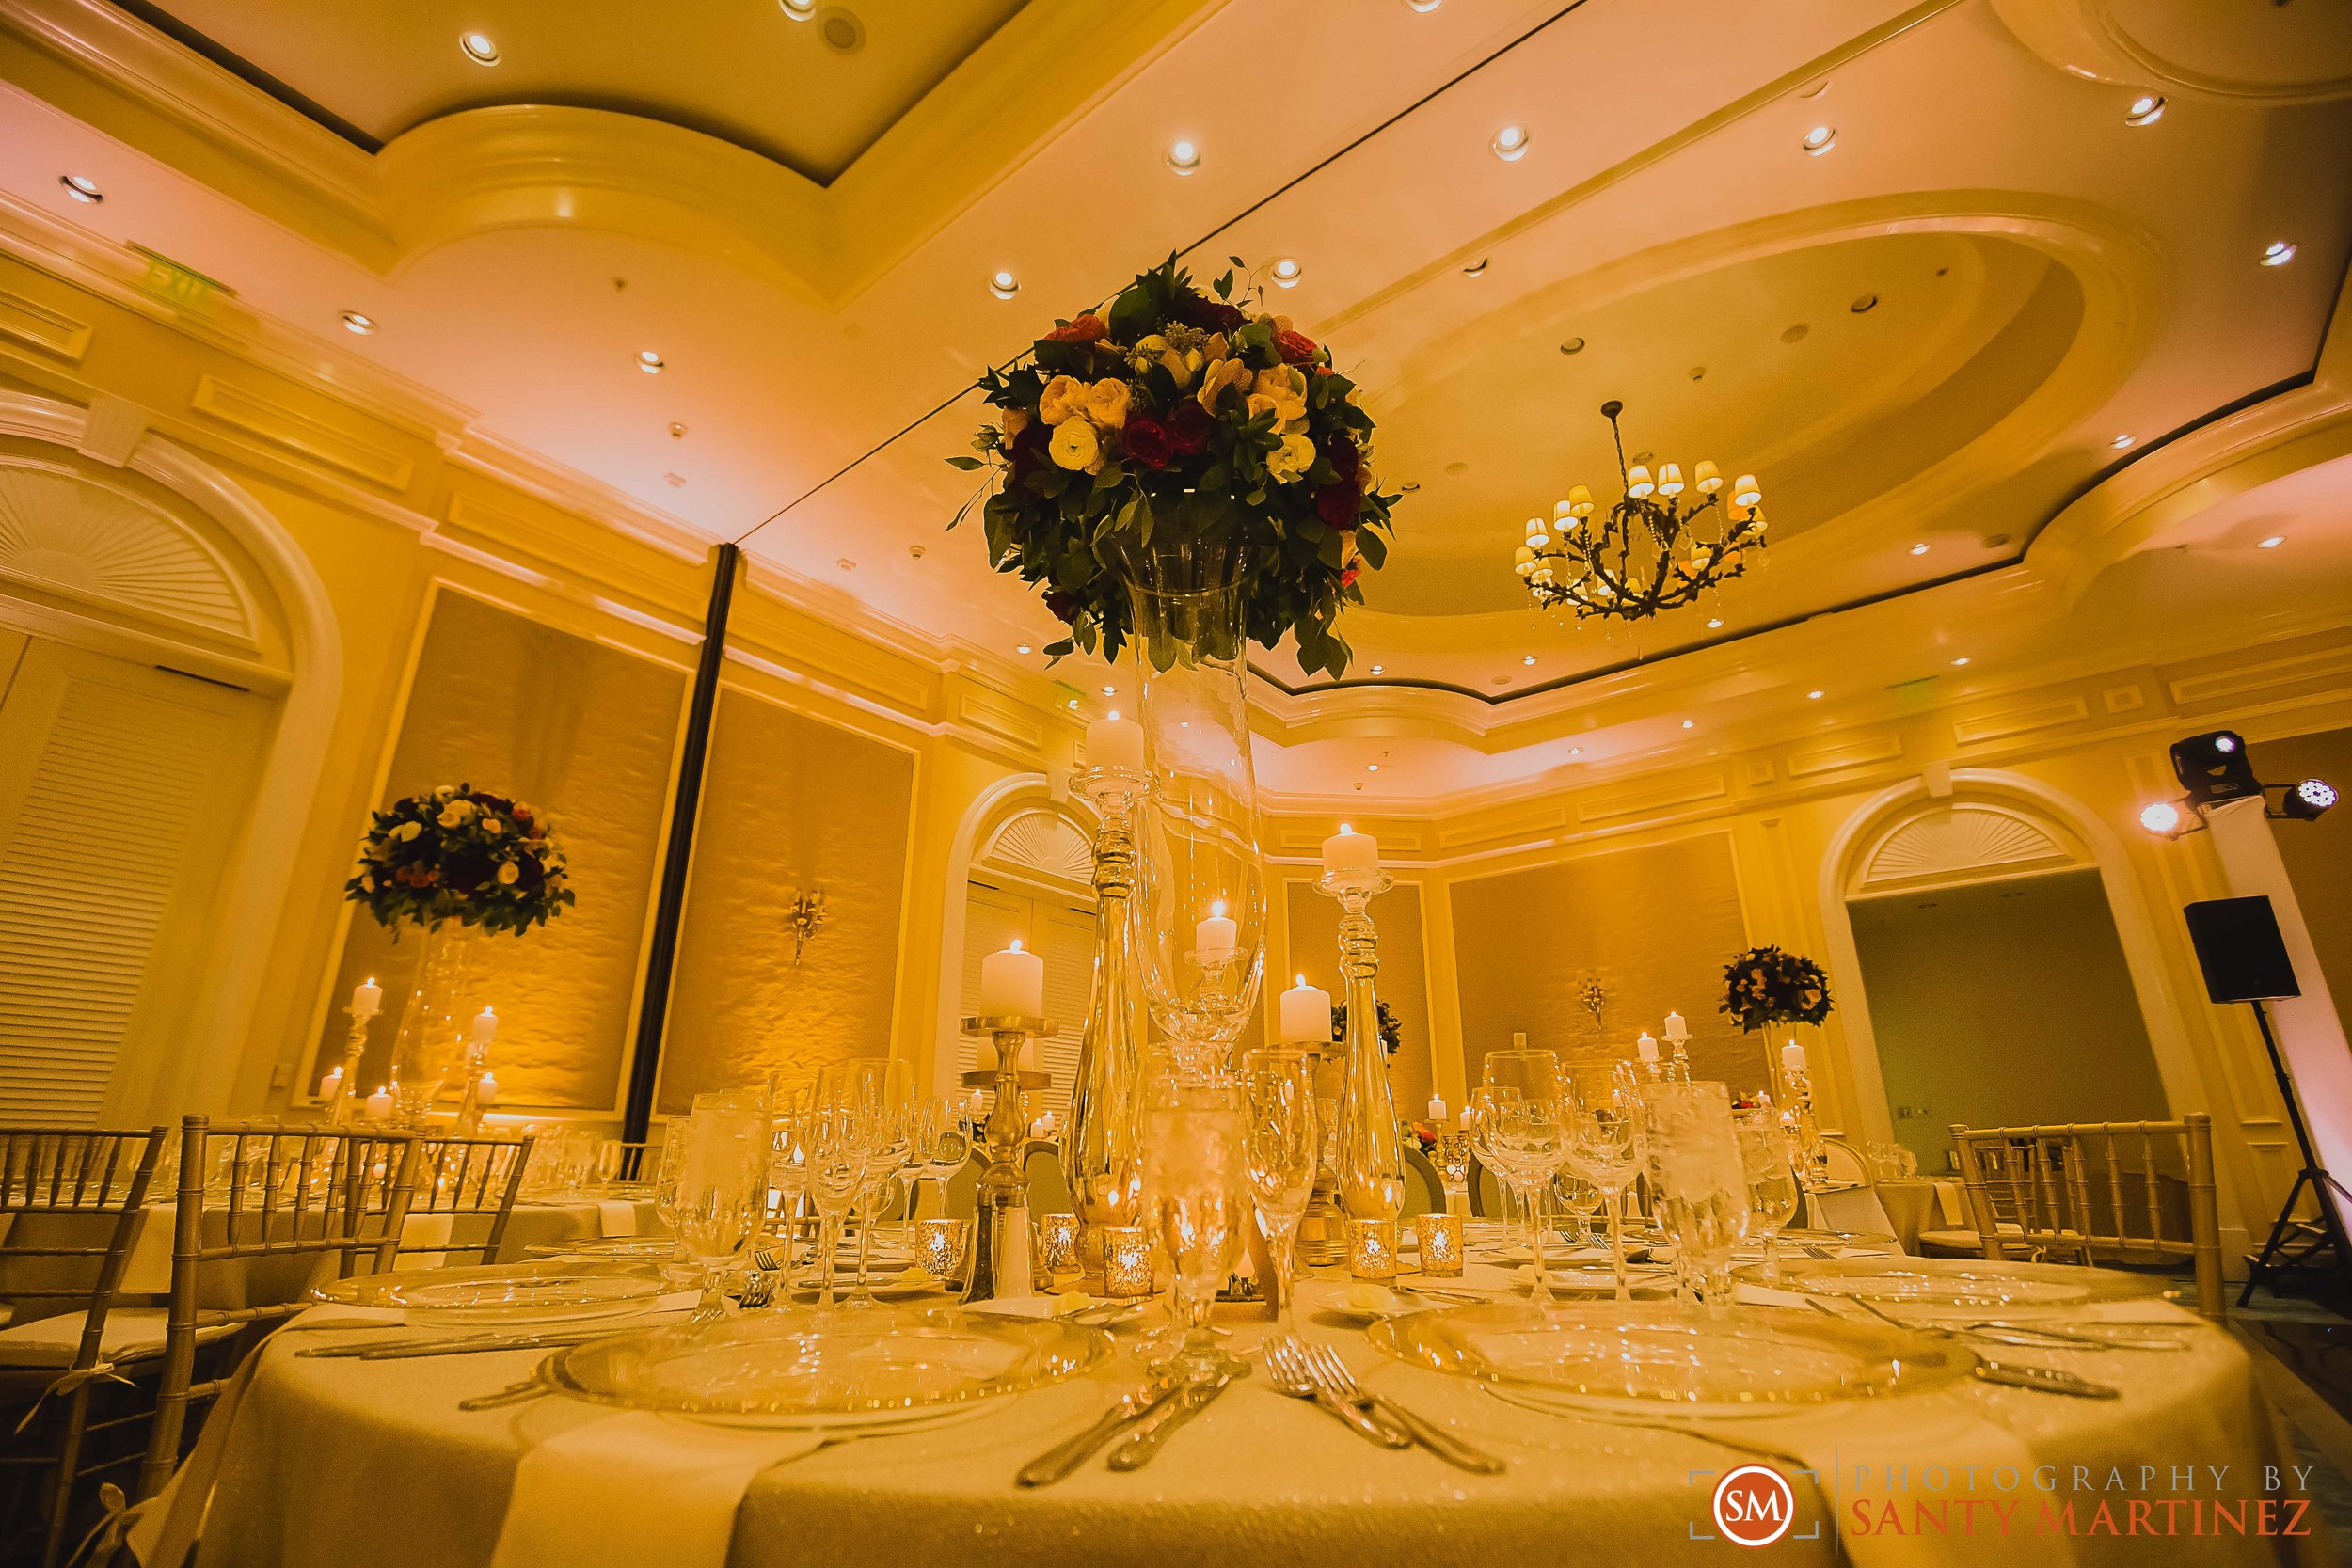 Wedding Ritz Carlton Coconut Grove - Santy Martinez-29.jpg